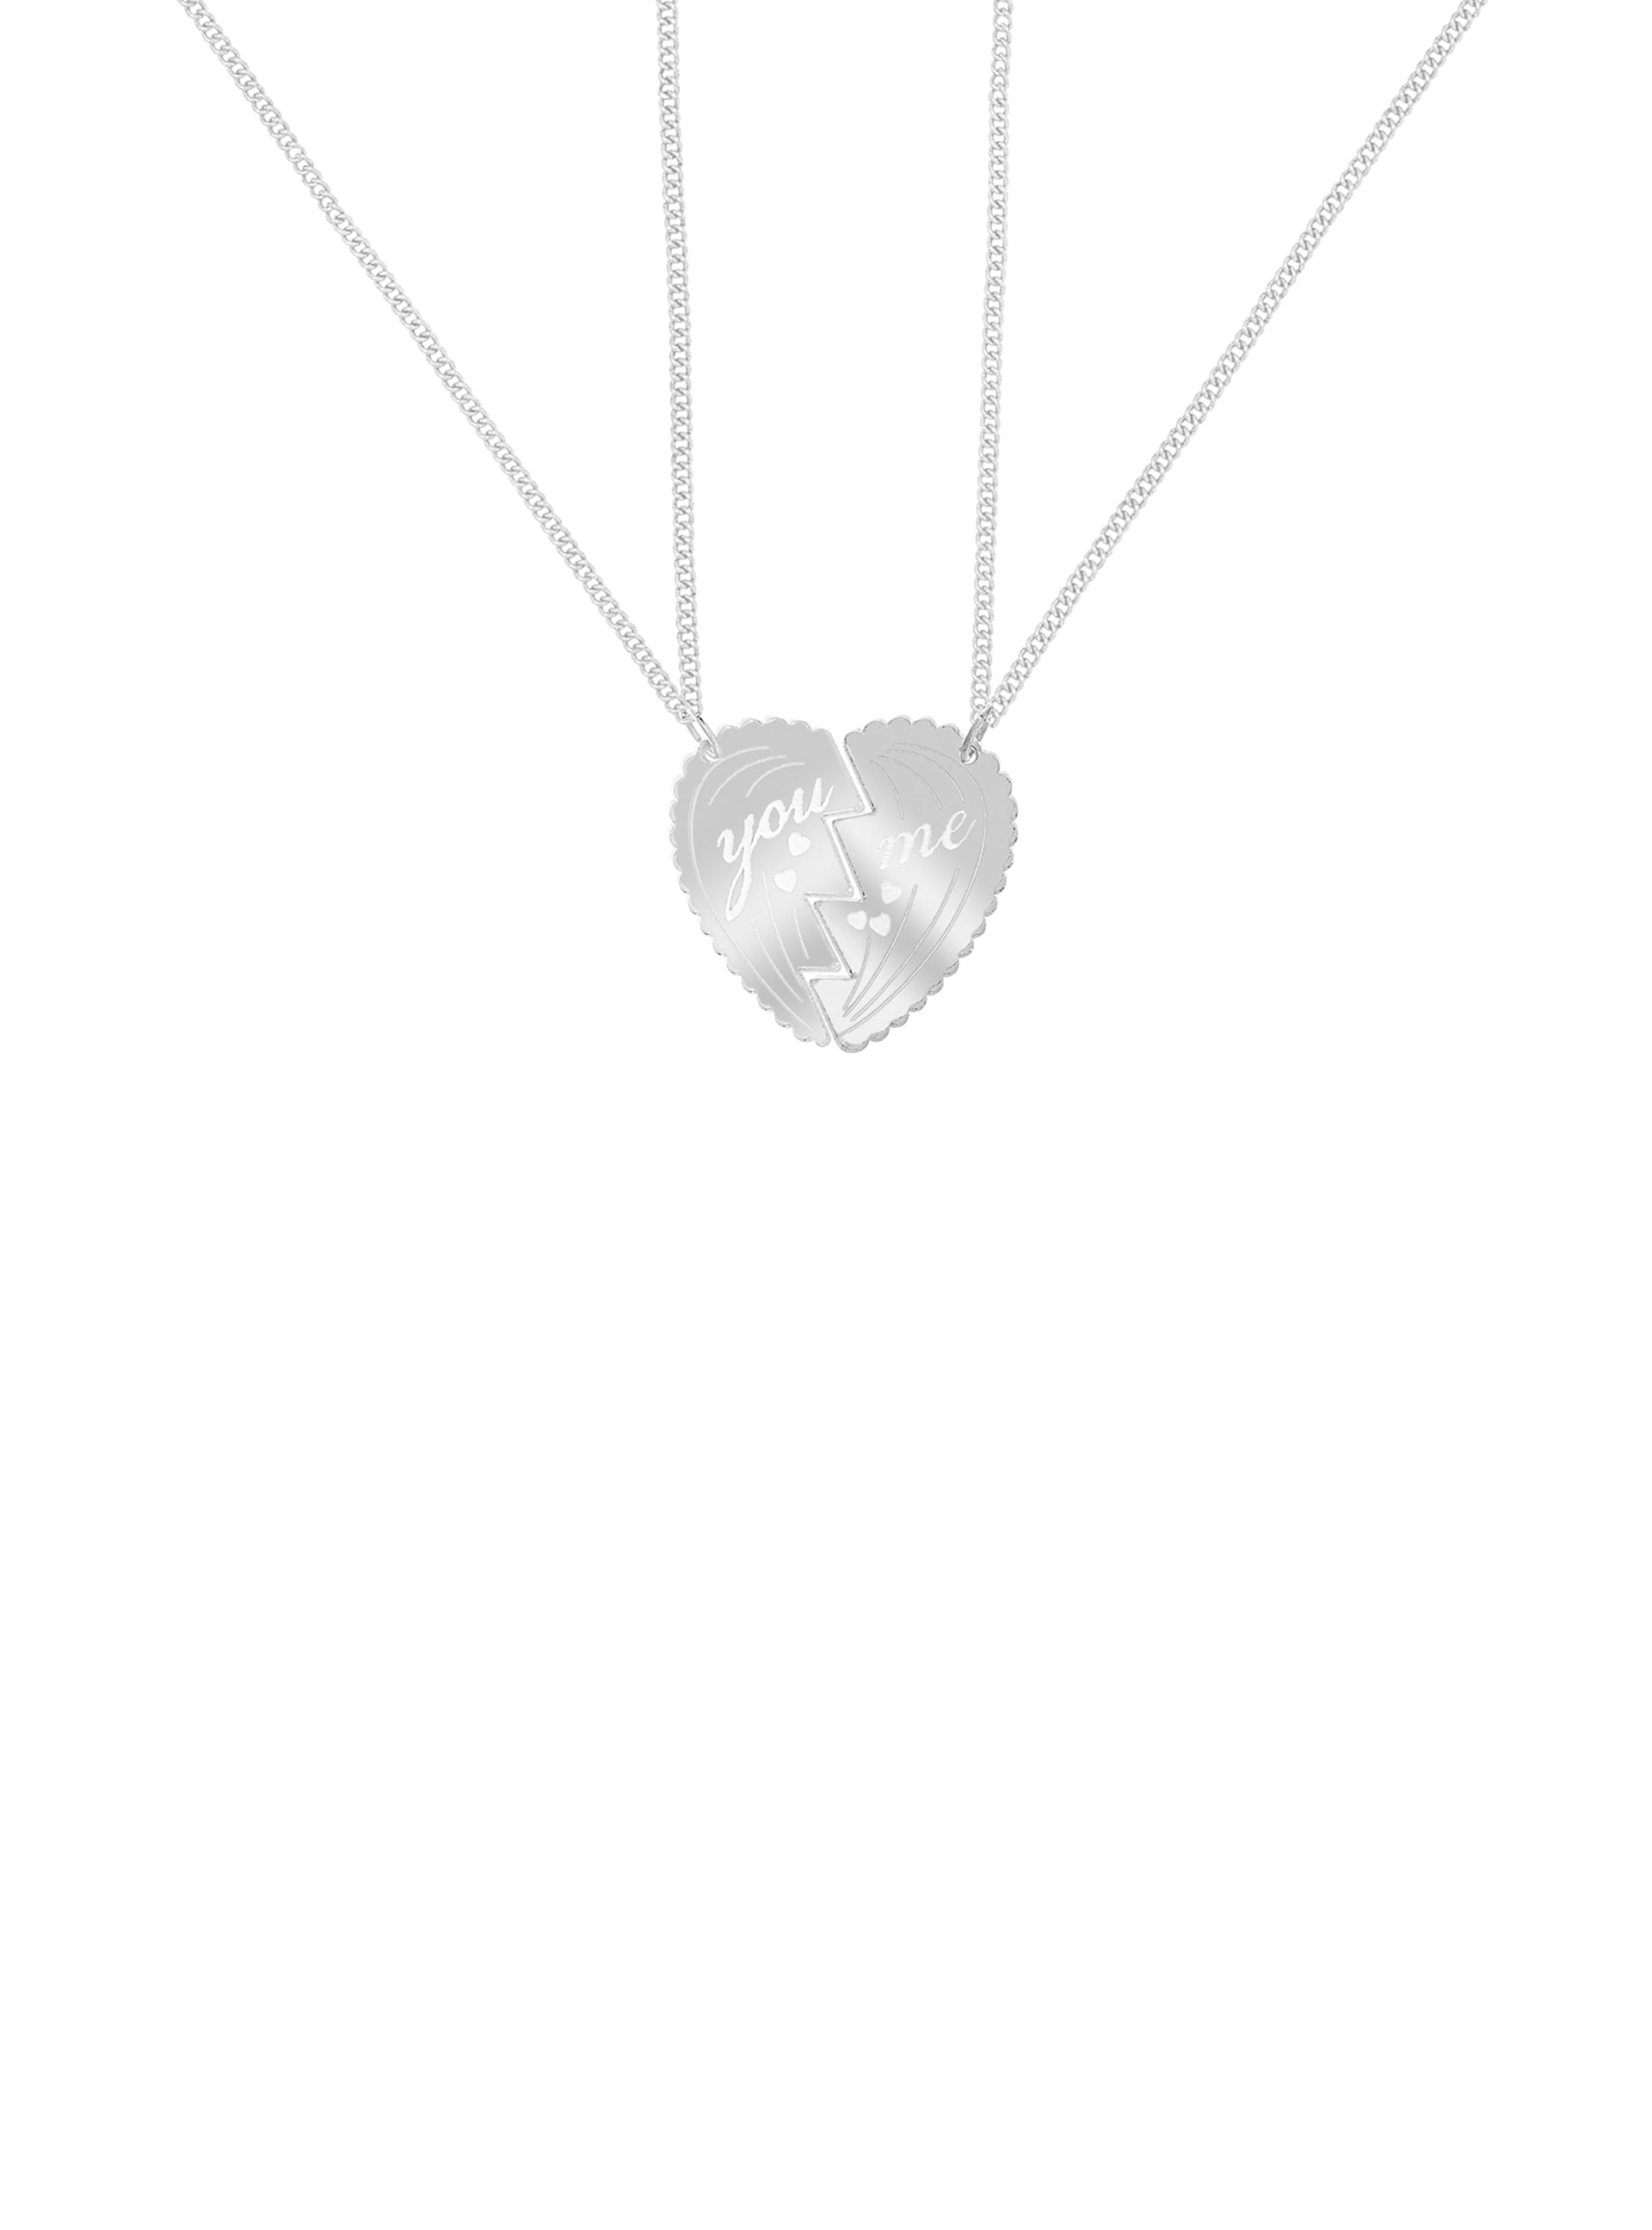 You and Me Heart Necklace Set